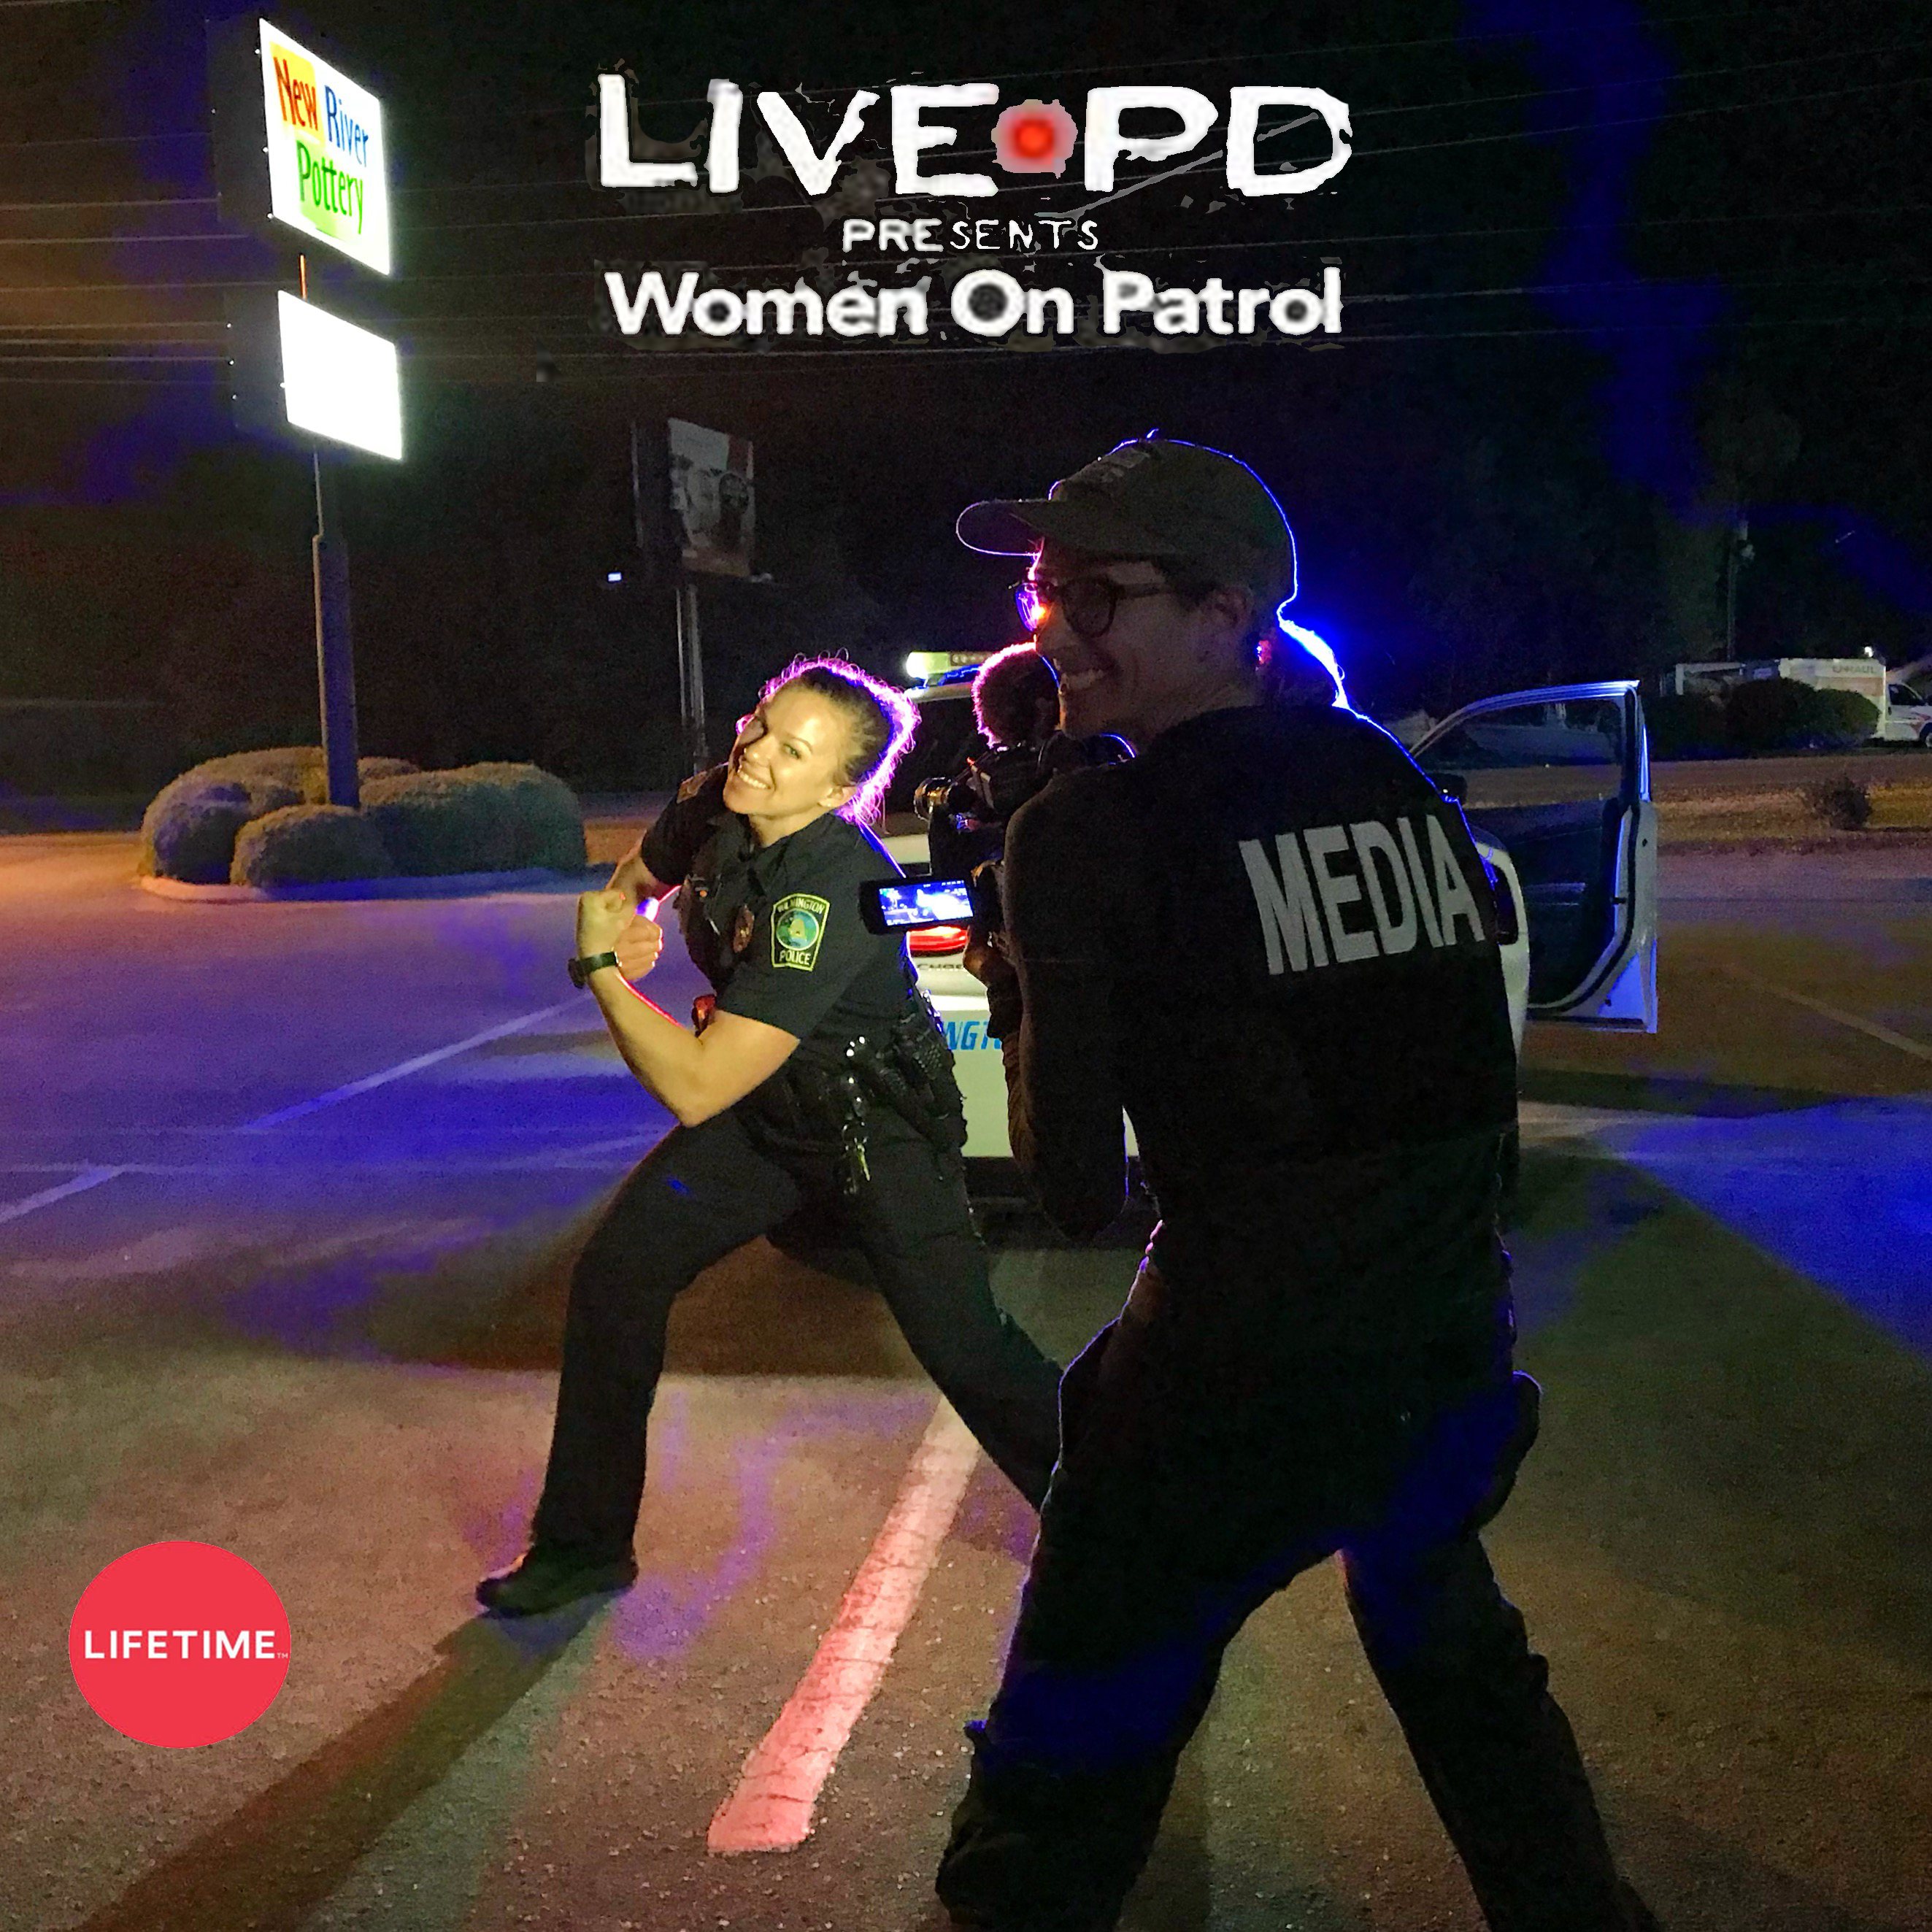 Women On Patrol for Lifetime